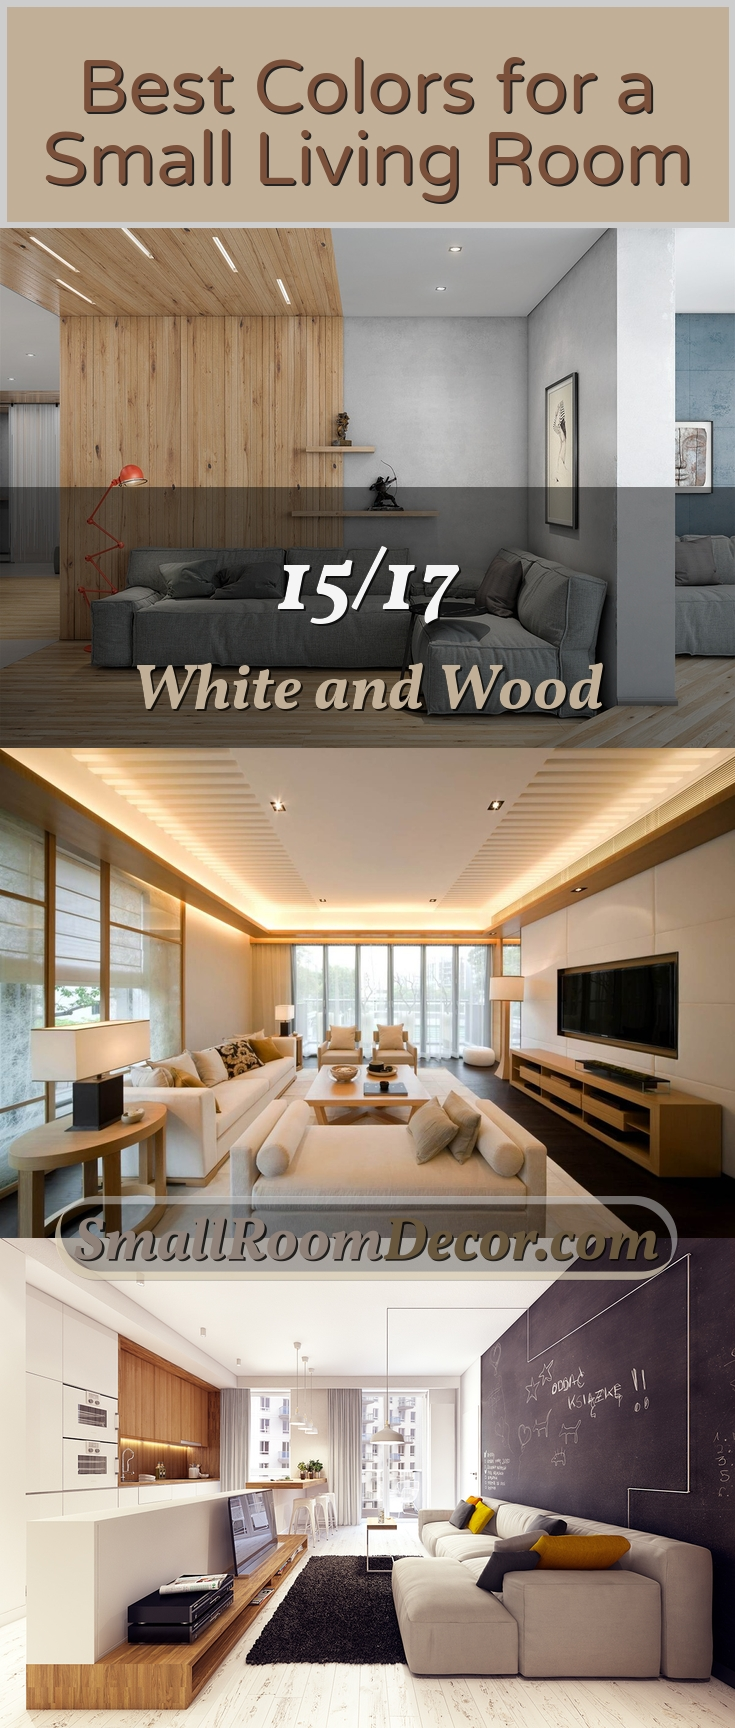 White and wood #livingroom